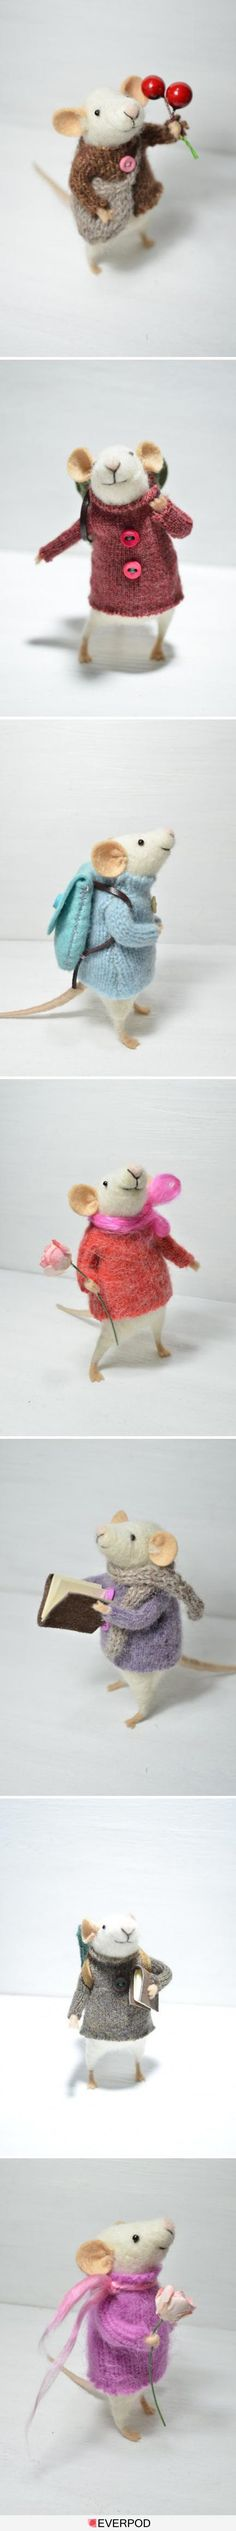 felted mice-people - so cute!  ***********************************************   (repin) #felted #mice #mouse √